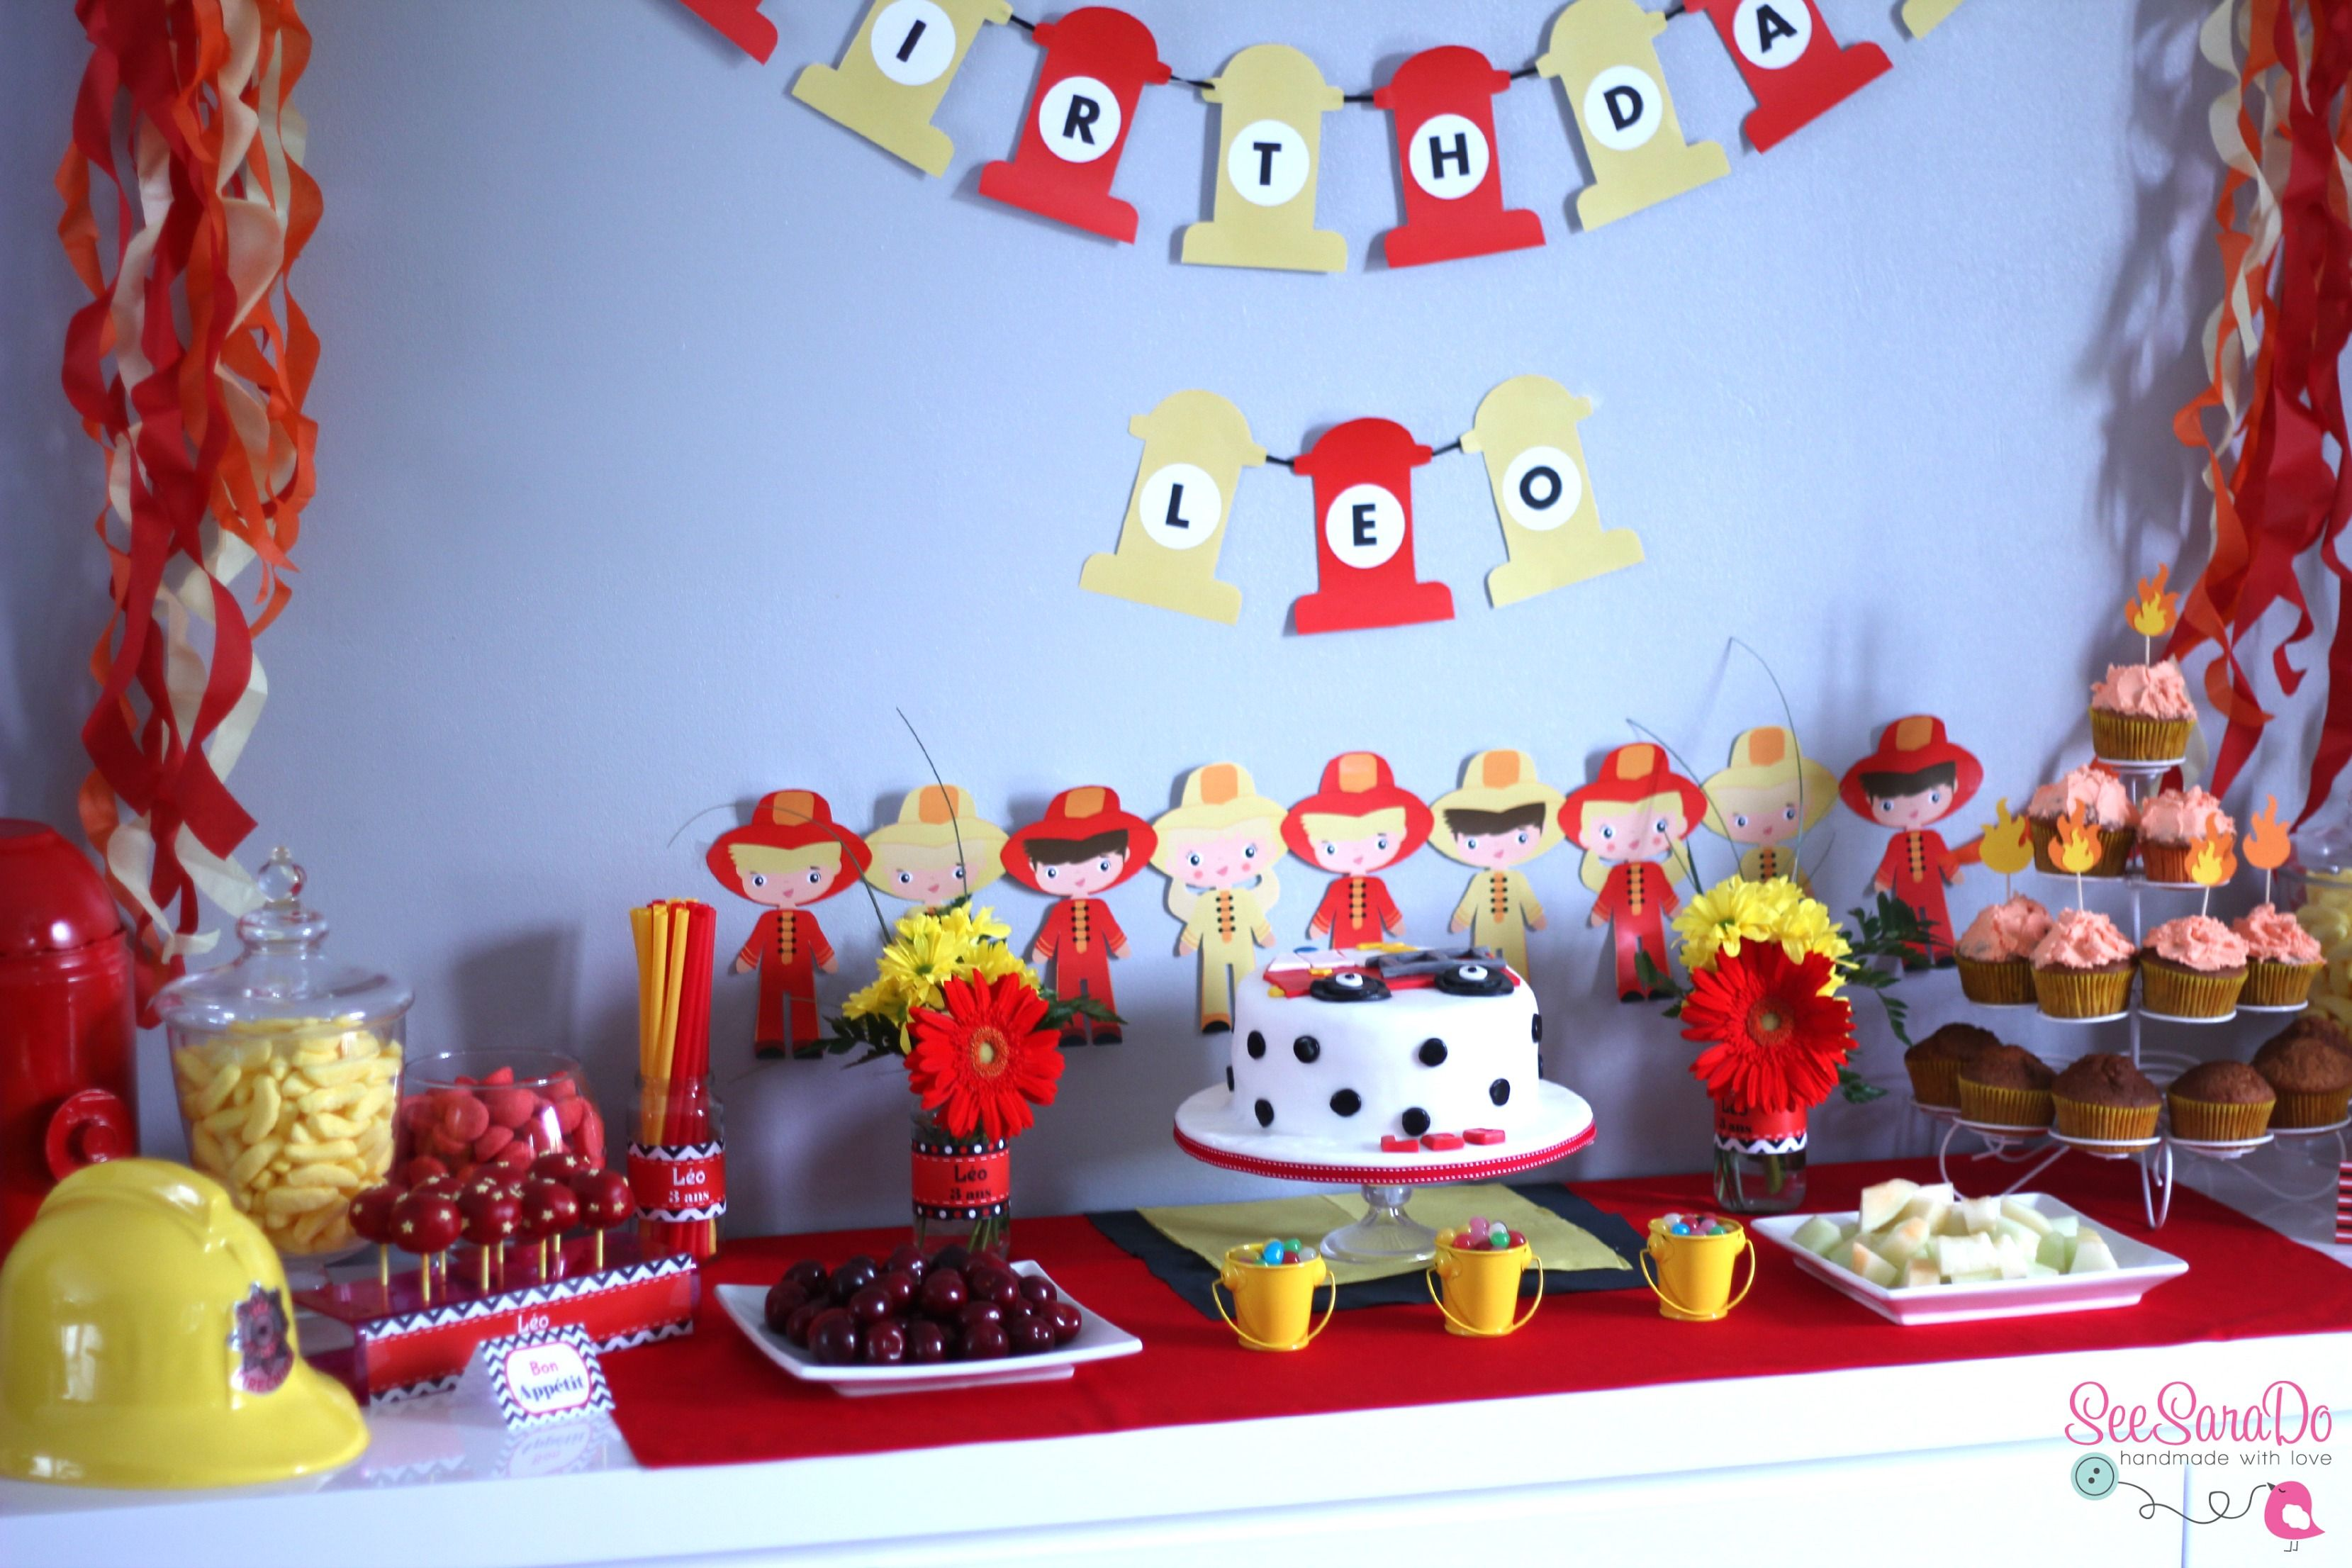 Sweet Table Pompiers Anniversaire Pompiers Fireman Birthday Party Pinterest Pompiers